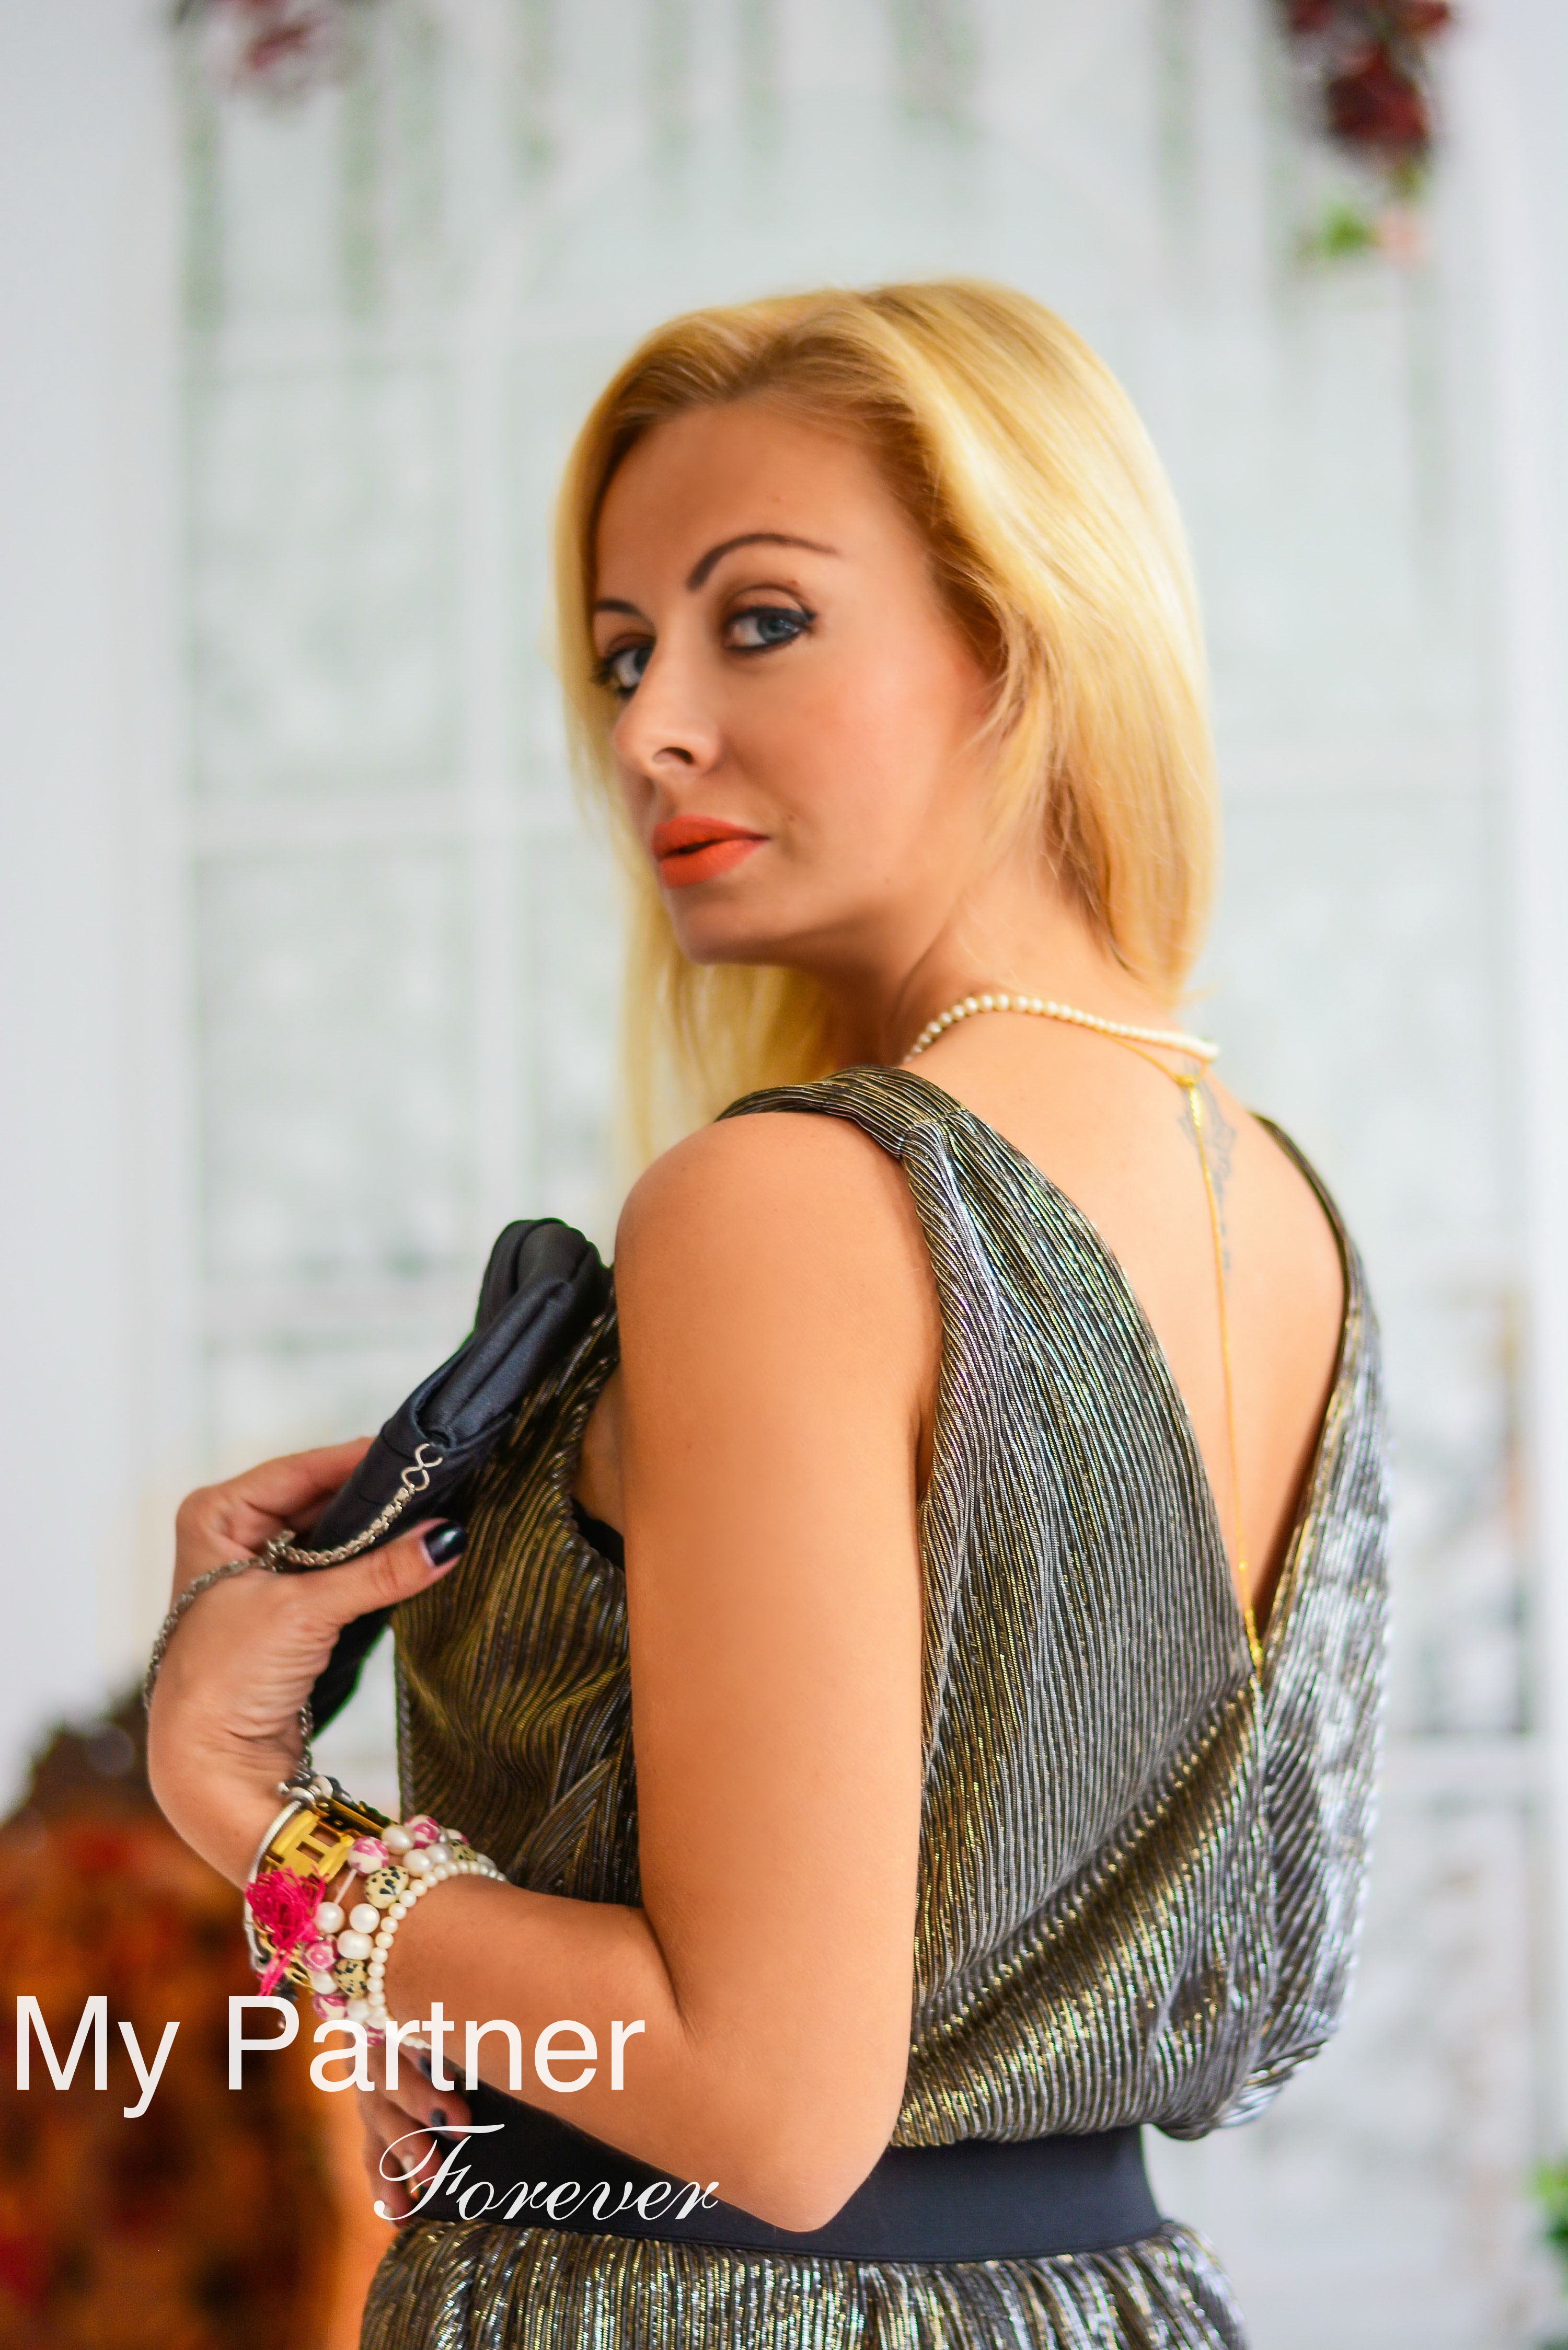 Ukrainian Girl for Marriage - Yana from Kharkov, Ukraine